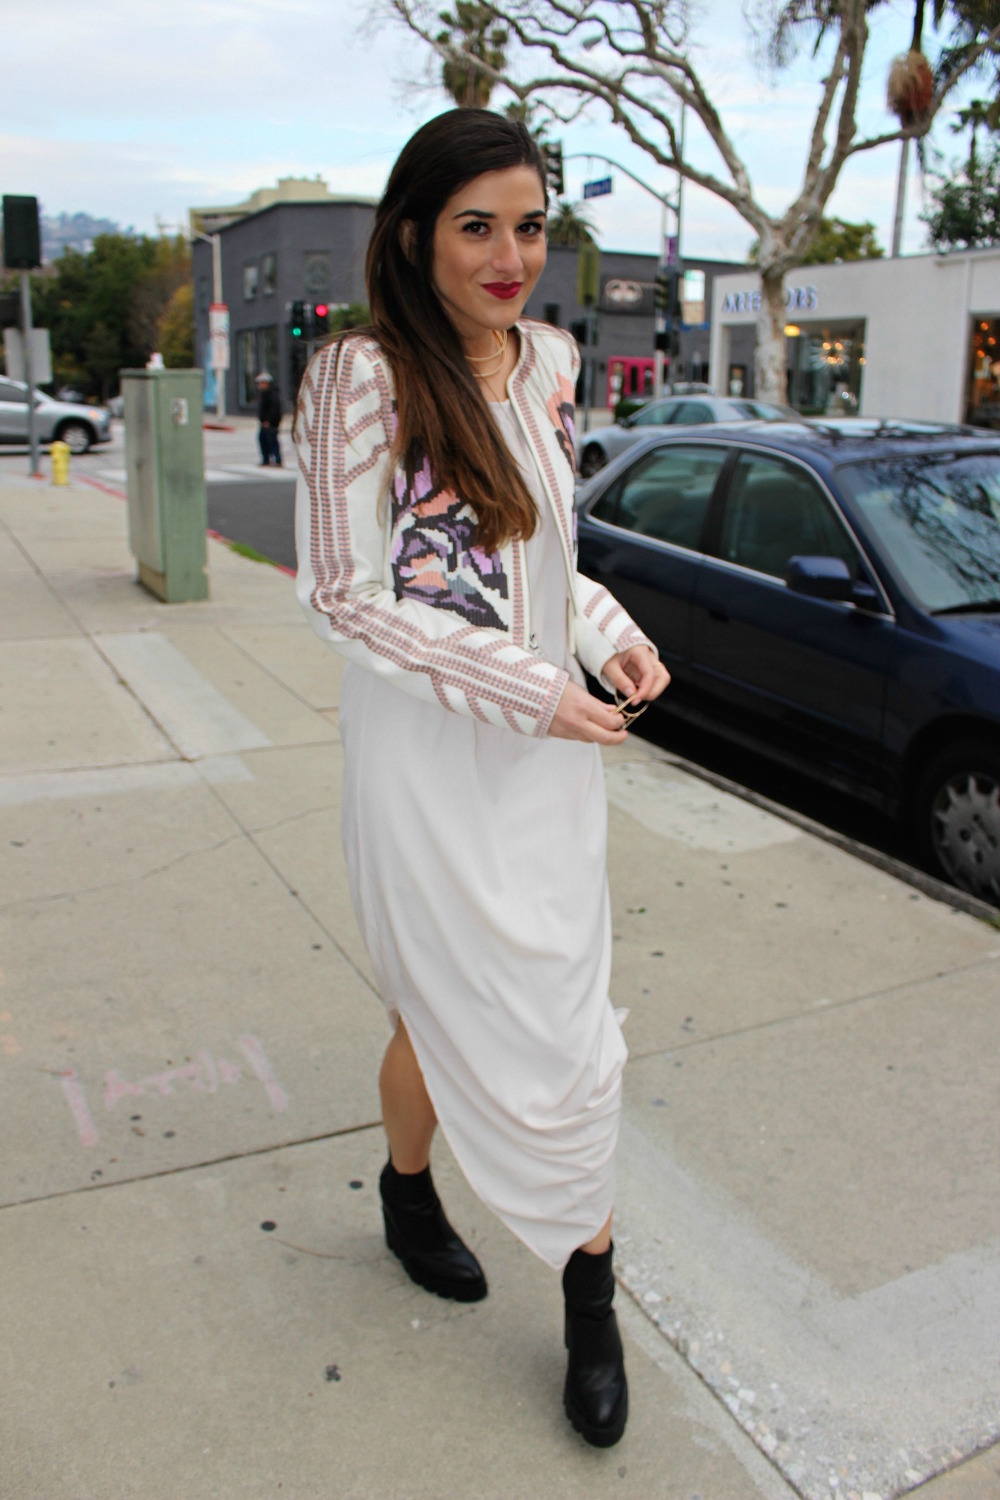 Knotted Maxi Dress Zehava Harel Louboutins & Love Fashion Blog Esther Santer NYC Street Style Blogger Blush Pink Modest Outfit OOTD BCBG Jacket Ash Booties Gold Collar Necklace RayBan Aviator Sunglasses Hair Inspo  Model Wear Accessories Model Women.jpg